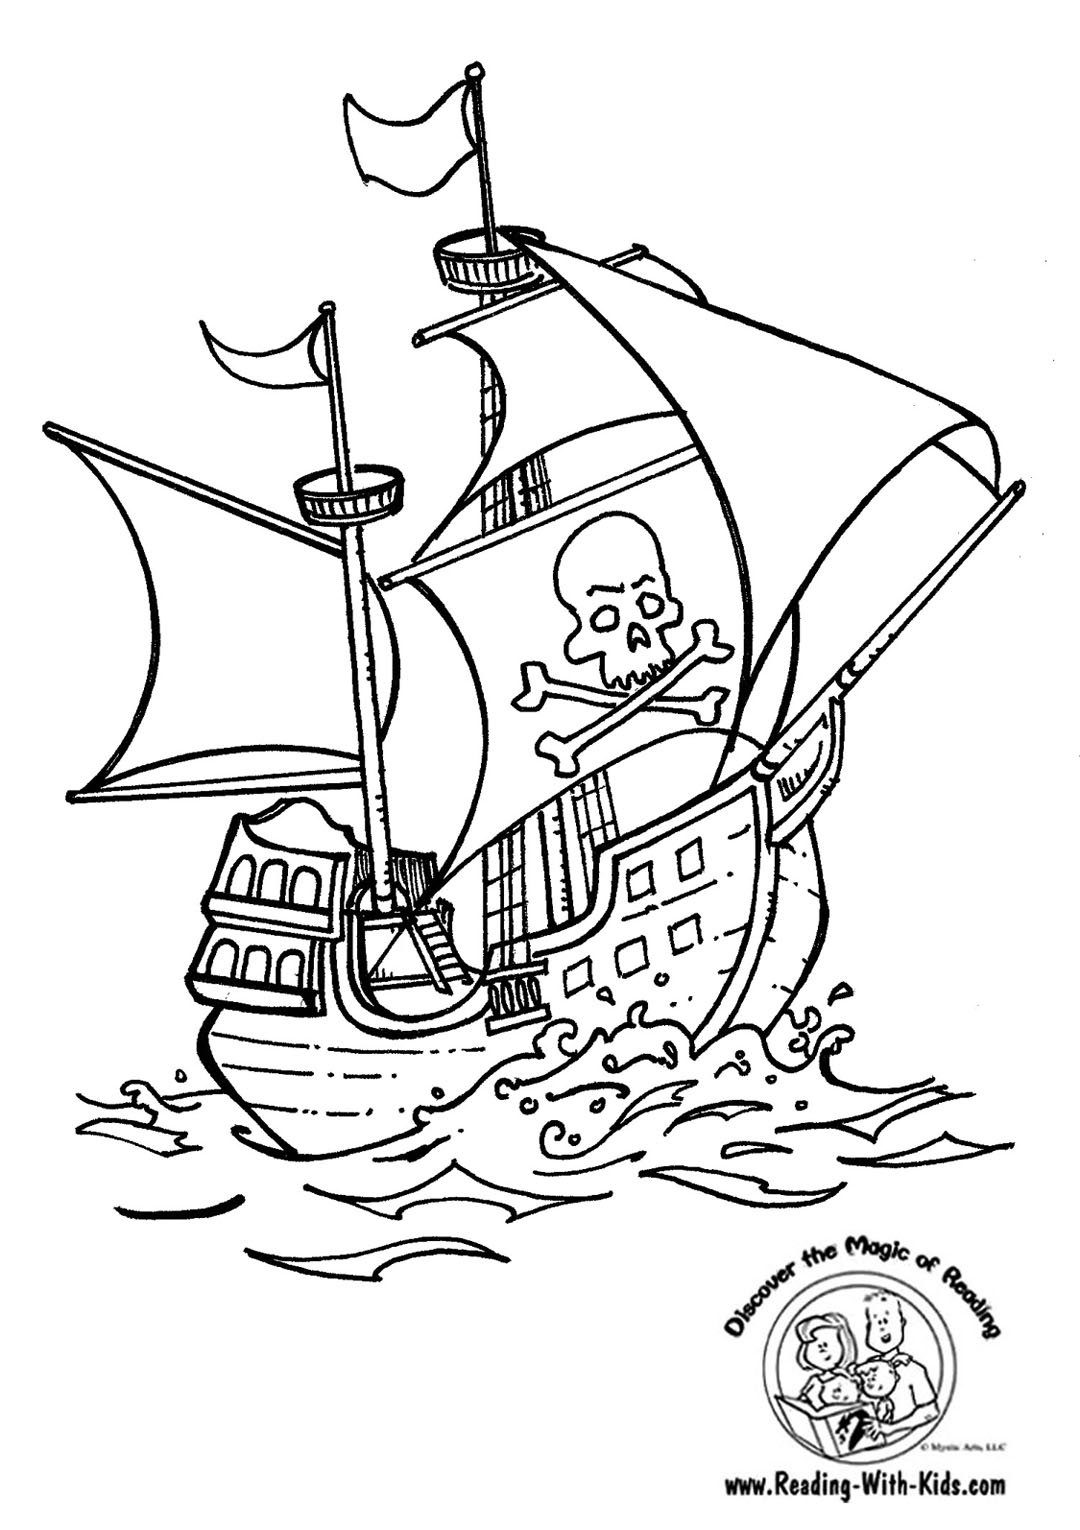 pirate images to colour pirates free to color for kids pirates kids coloring pages pirate colour images to